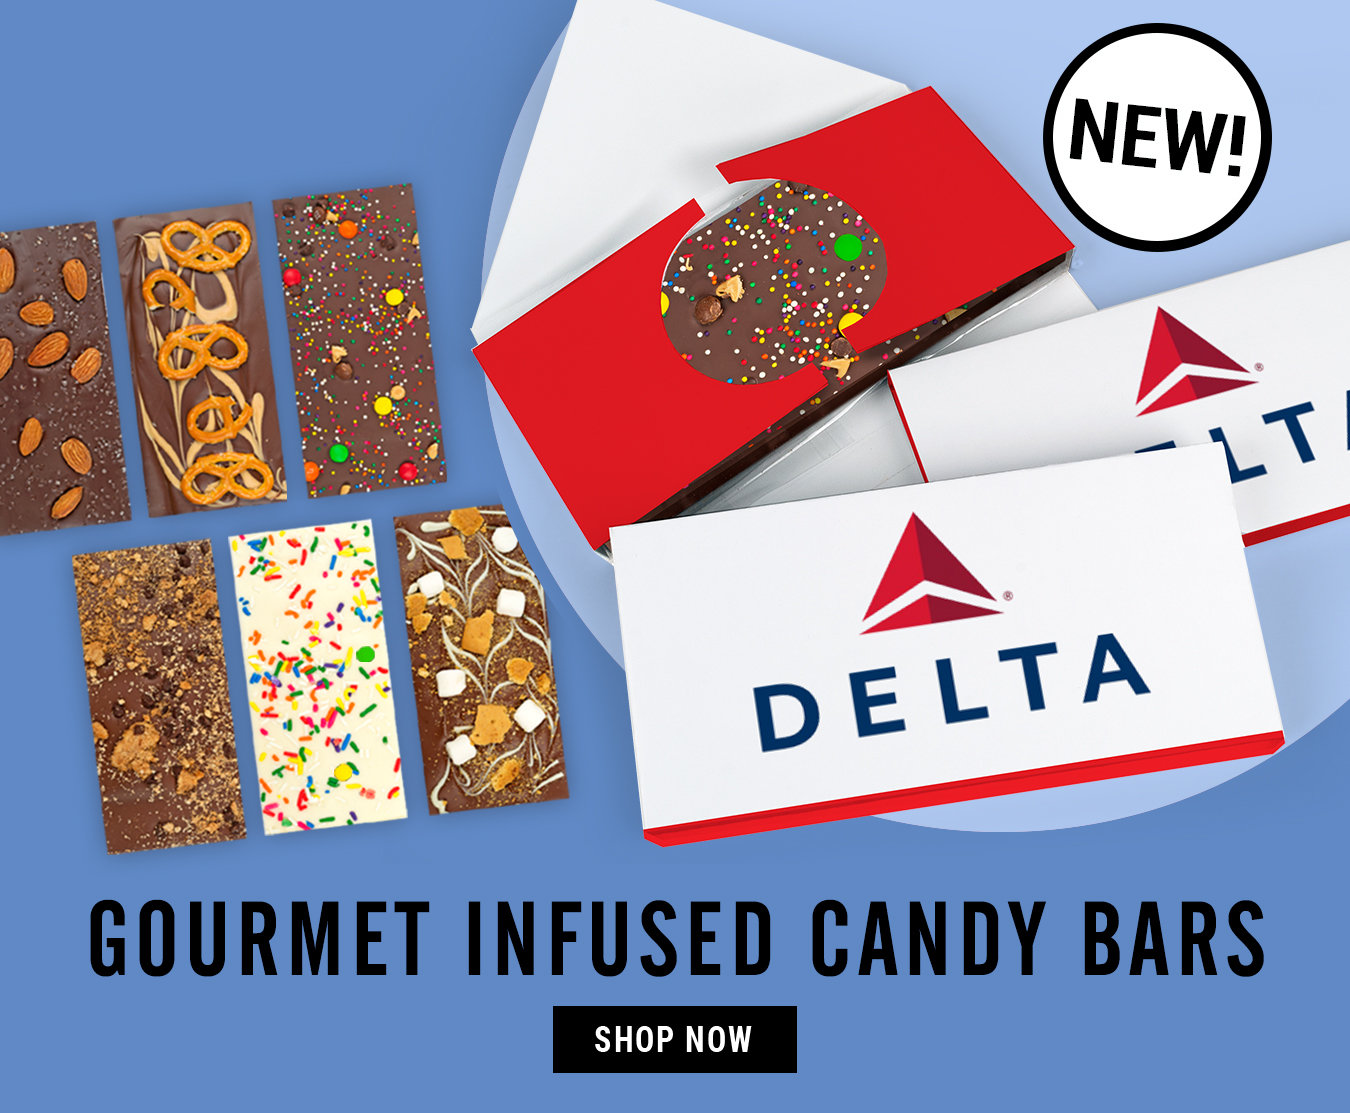 Shop Gourmet Infused Bars - infused with candy